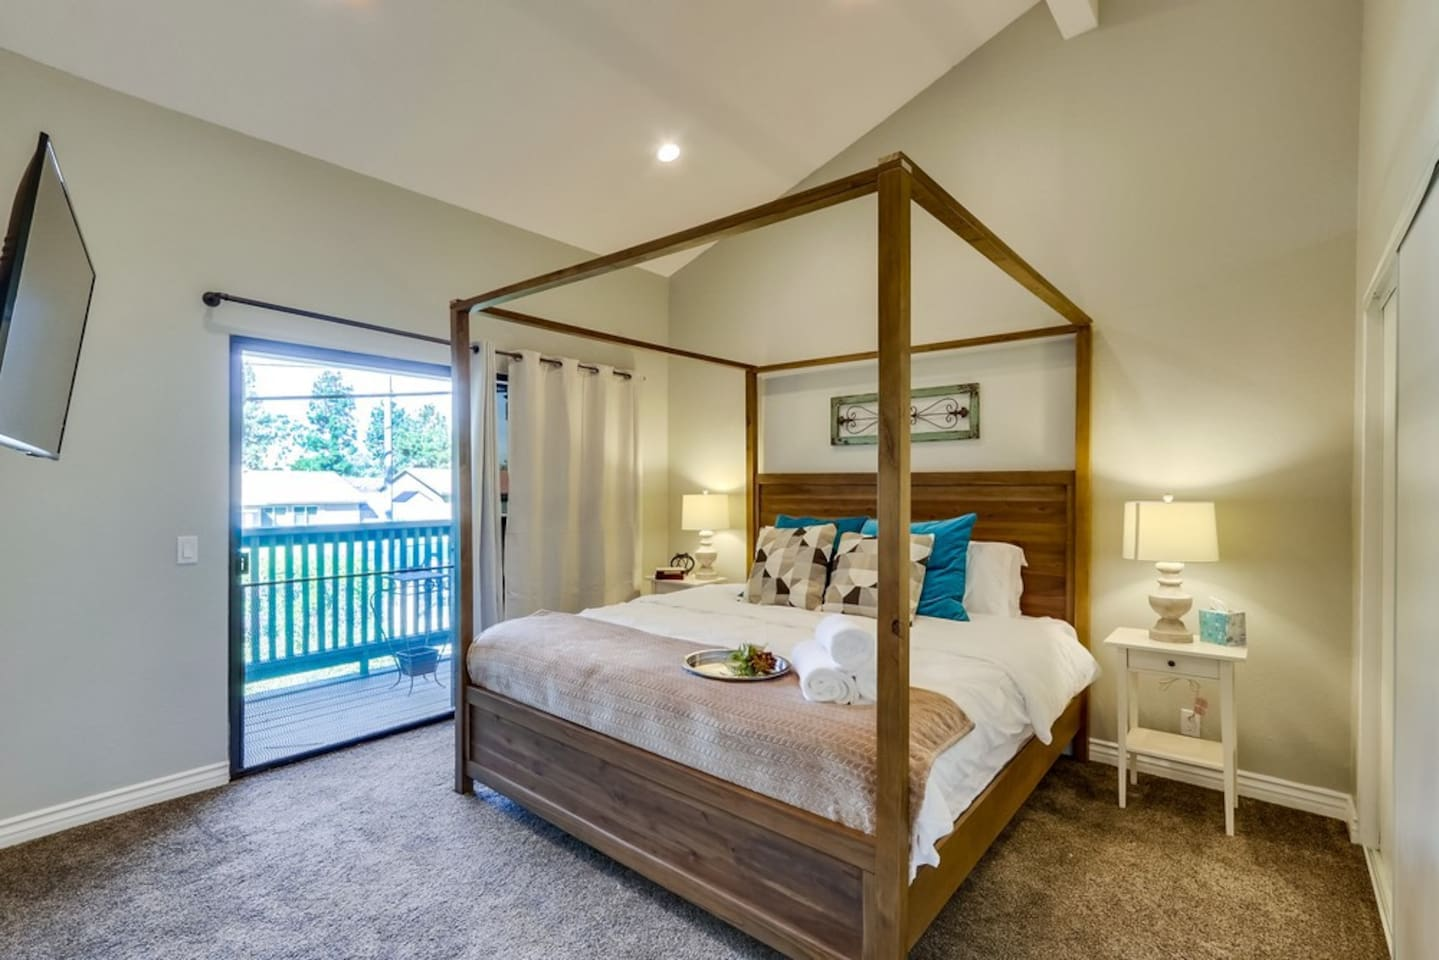 """This is the master bedroom with a private bathroom, shower, tub and 2 sinks. also 2 large closets, 55"""" smart TV and balcony."""